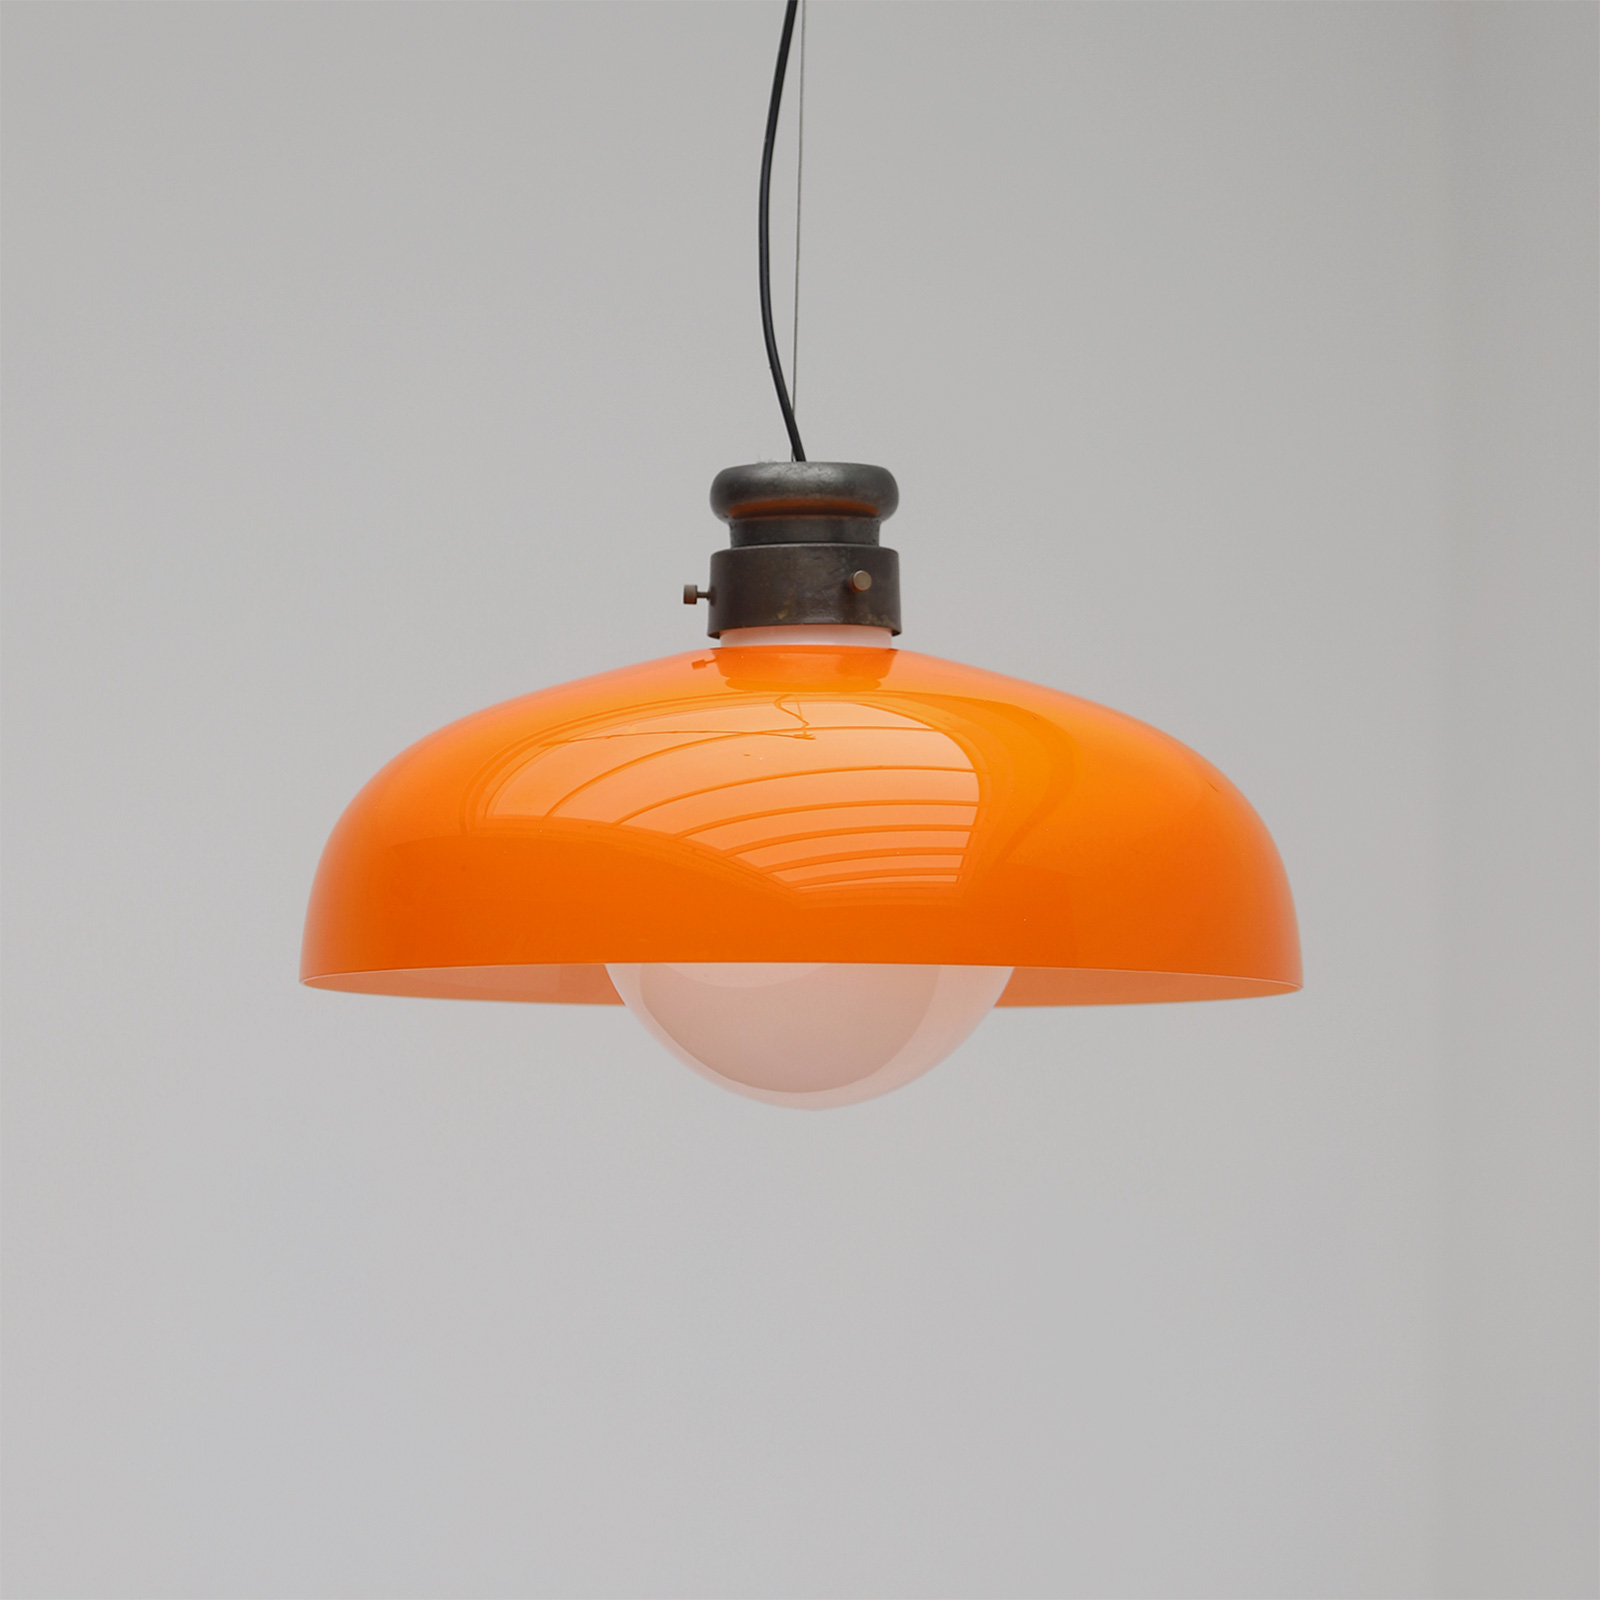 Pendant Lamp by Alessandro Pianon for Vistosi